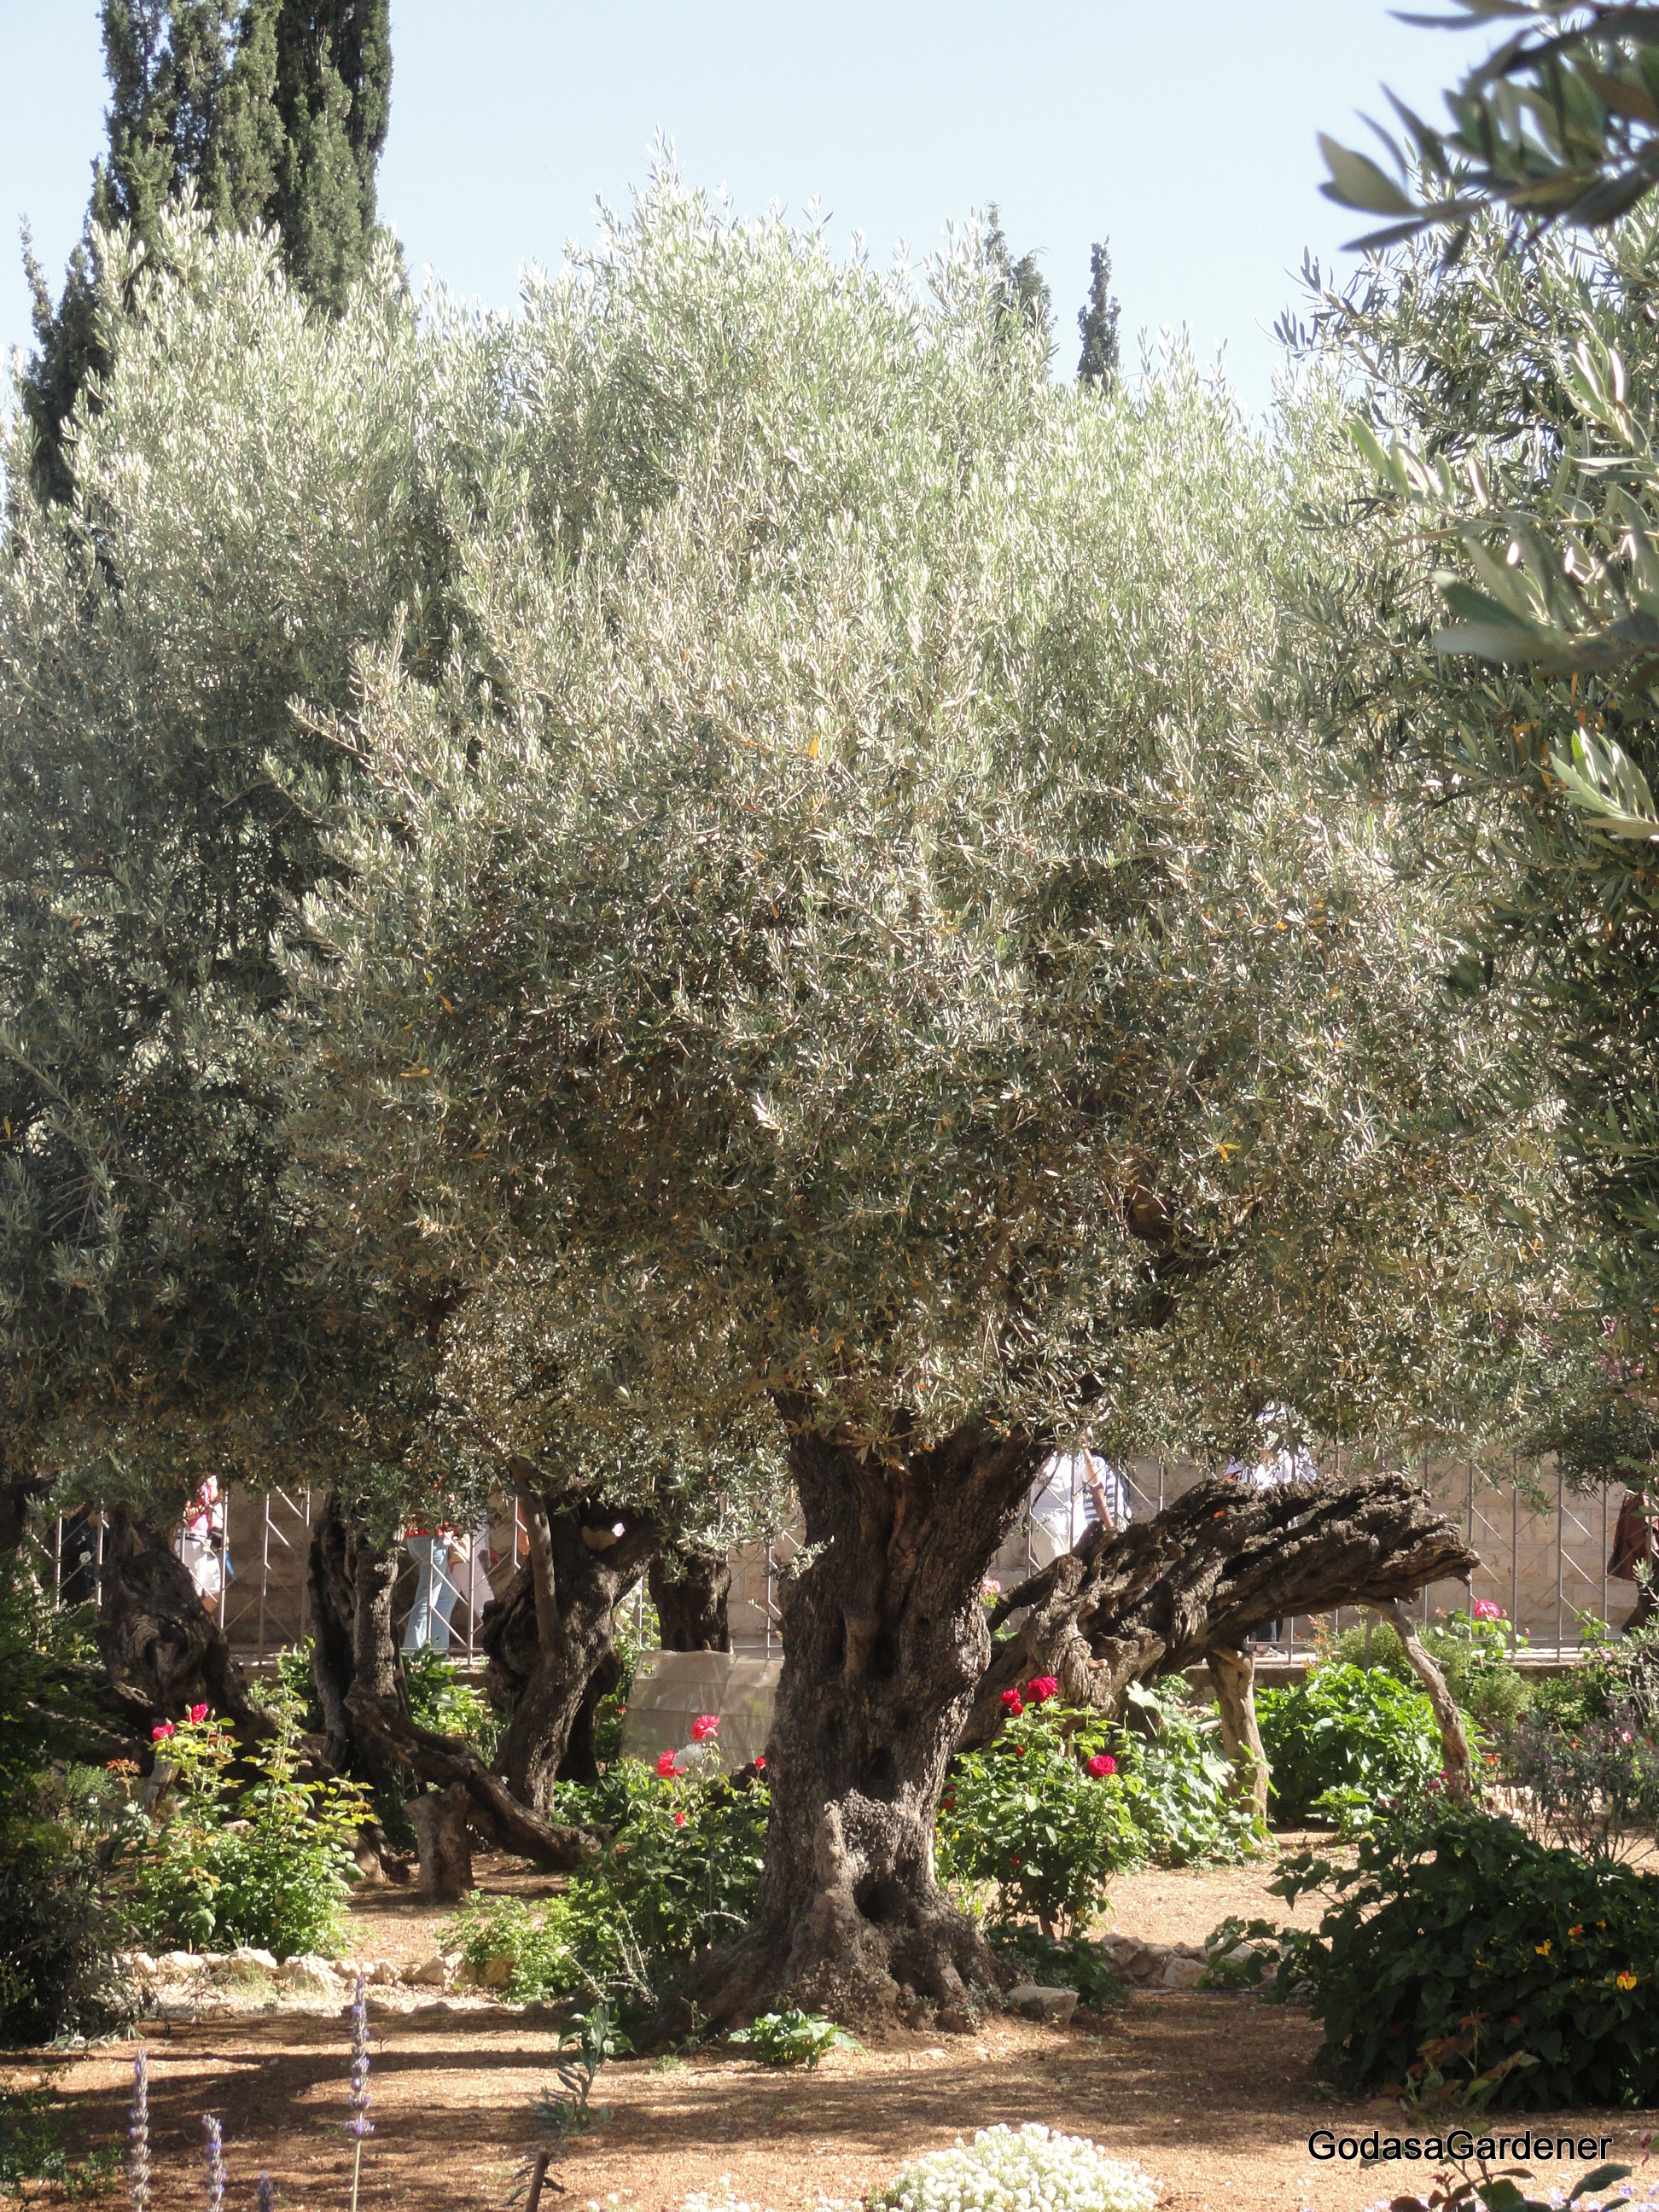 Ancient Lampstand Olive Tree In The Tabernacle | God As A Gardener